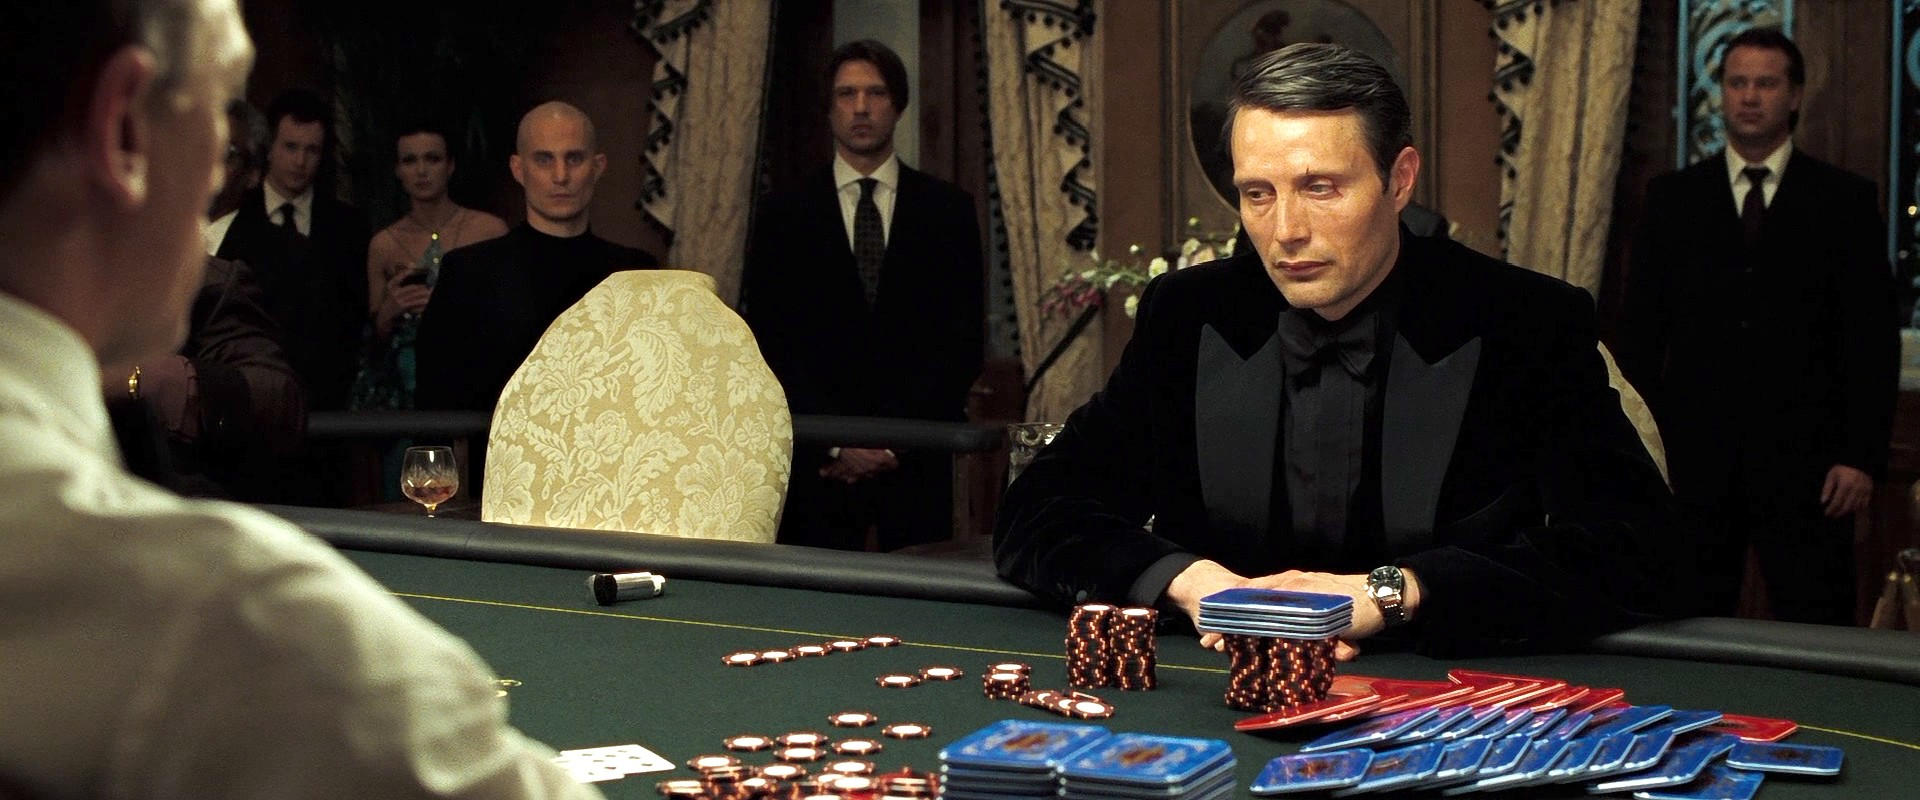 Casino royale trip hop